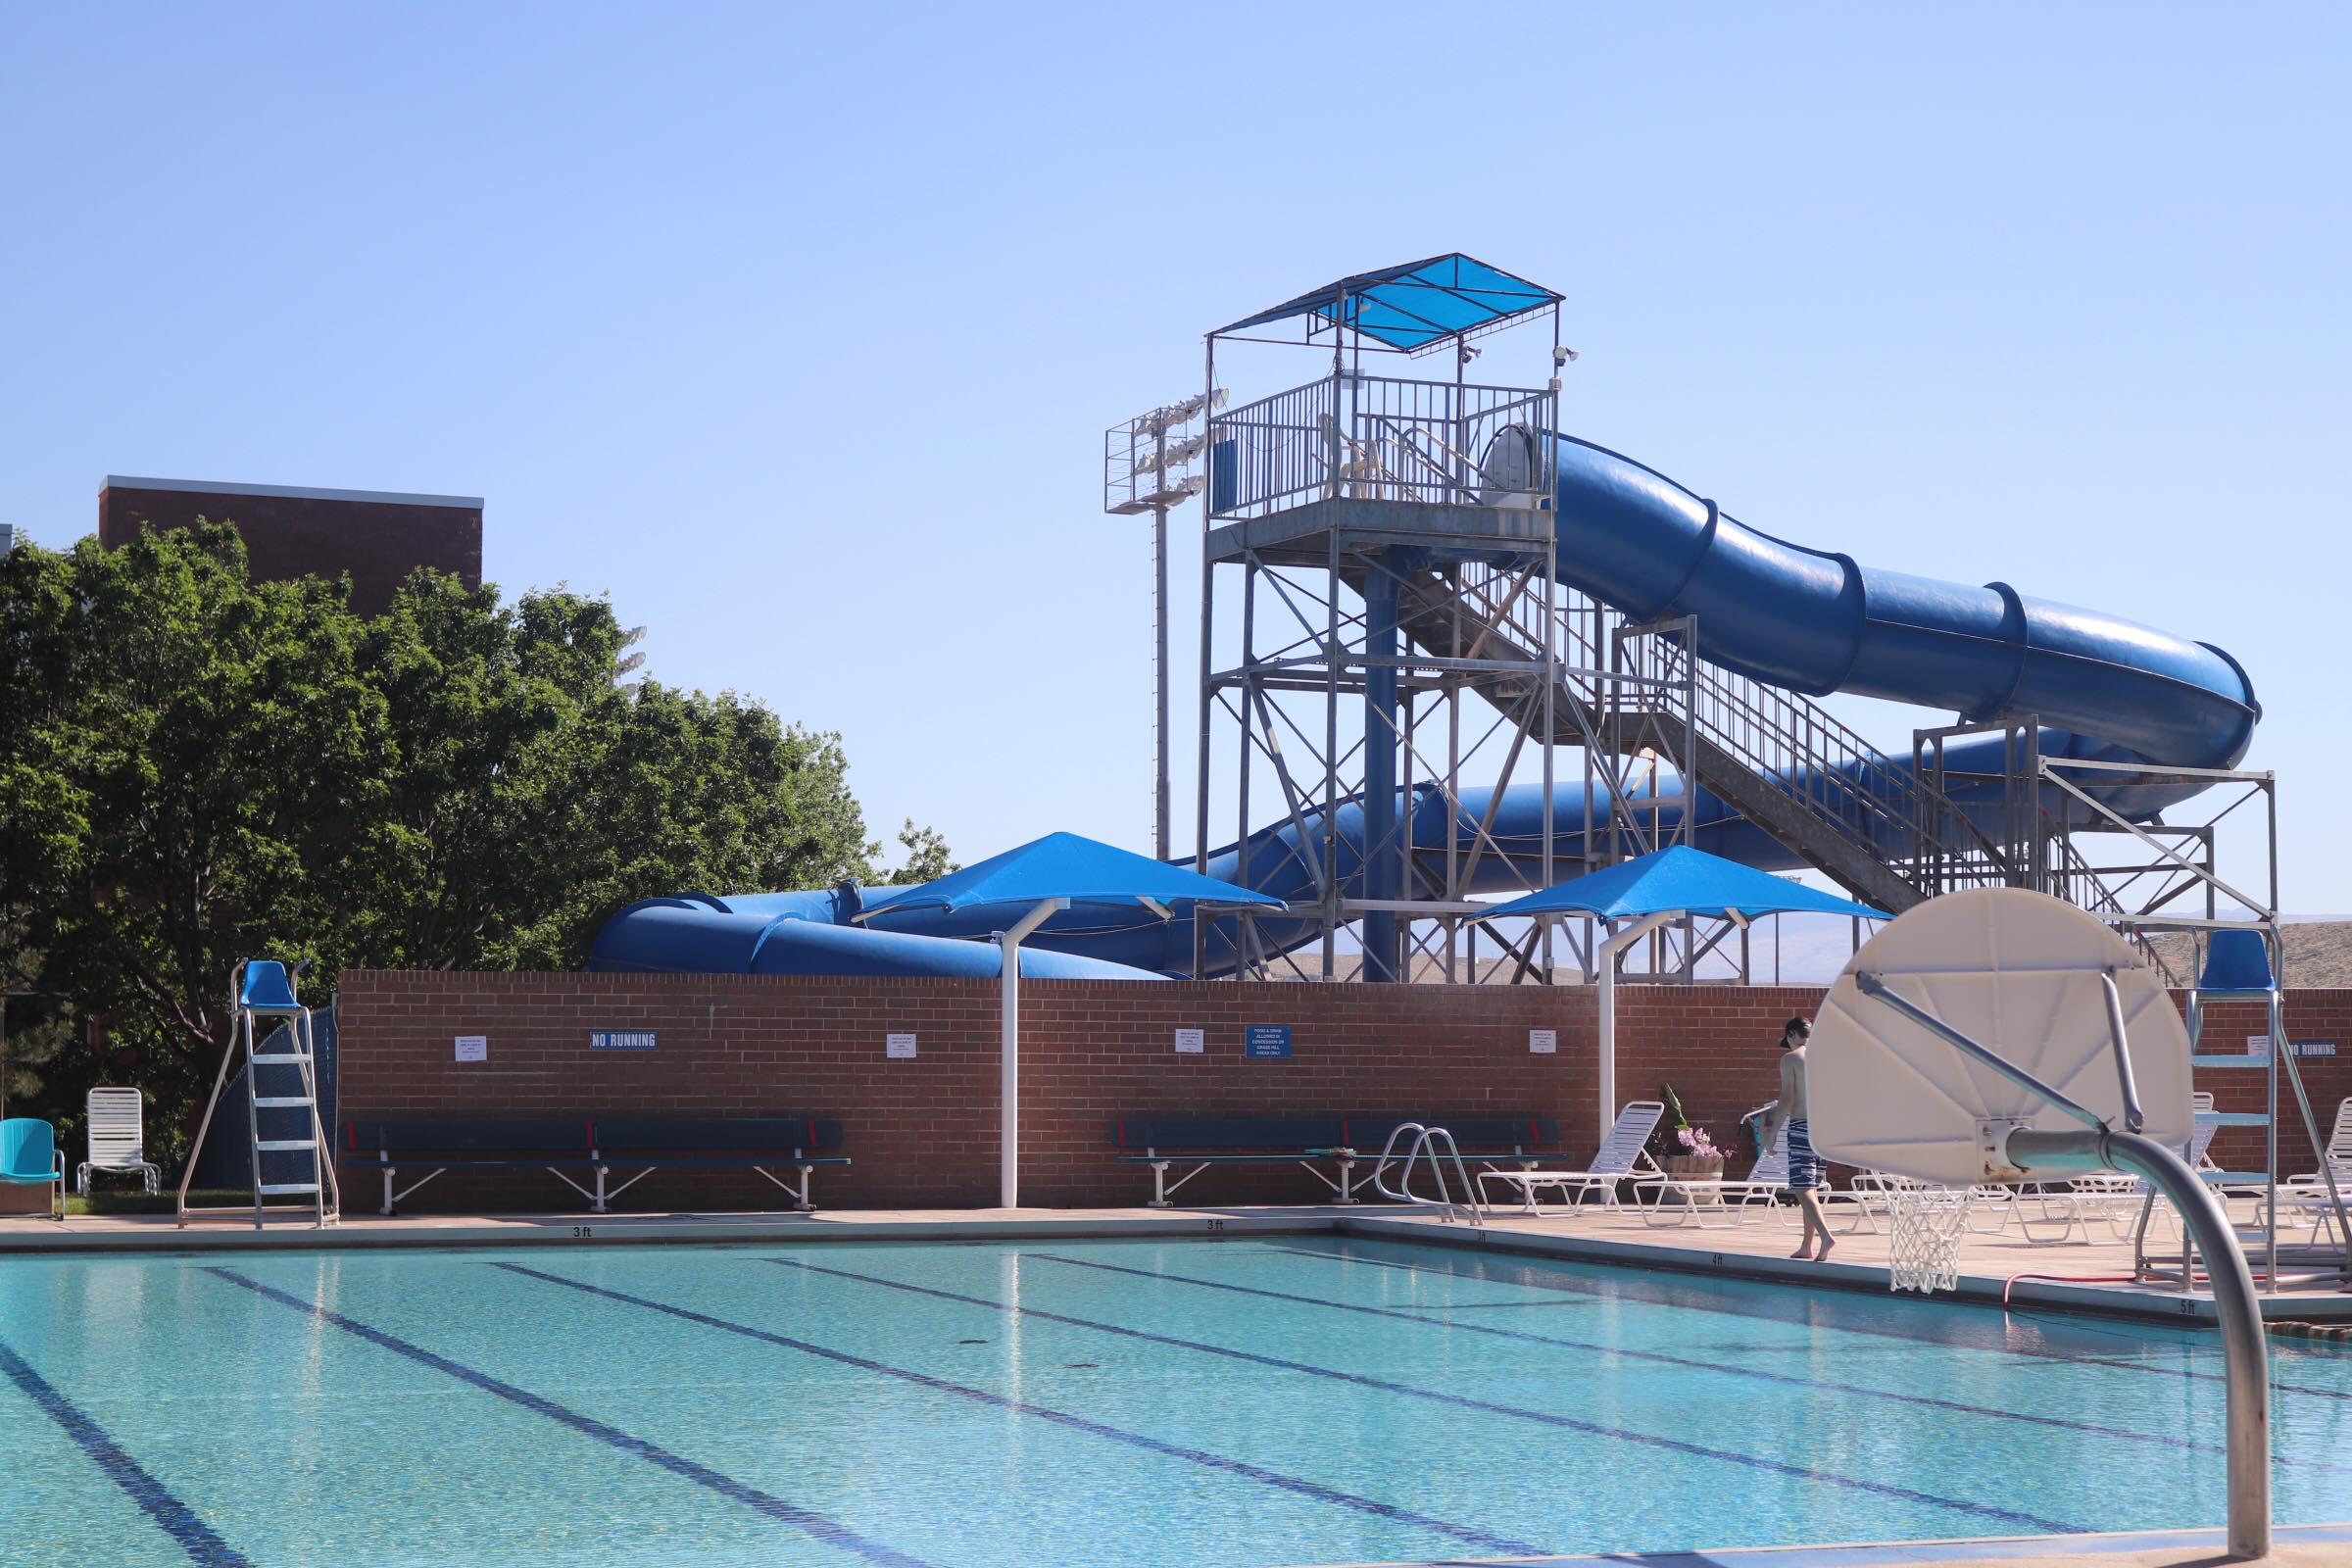 As St George Begins To Reopen Plans For Theaters Restaurants Pools Are In Flux St George News